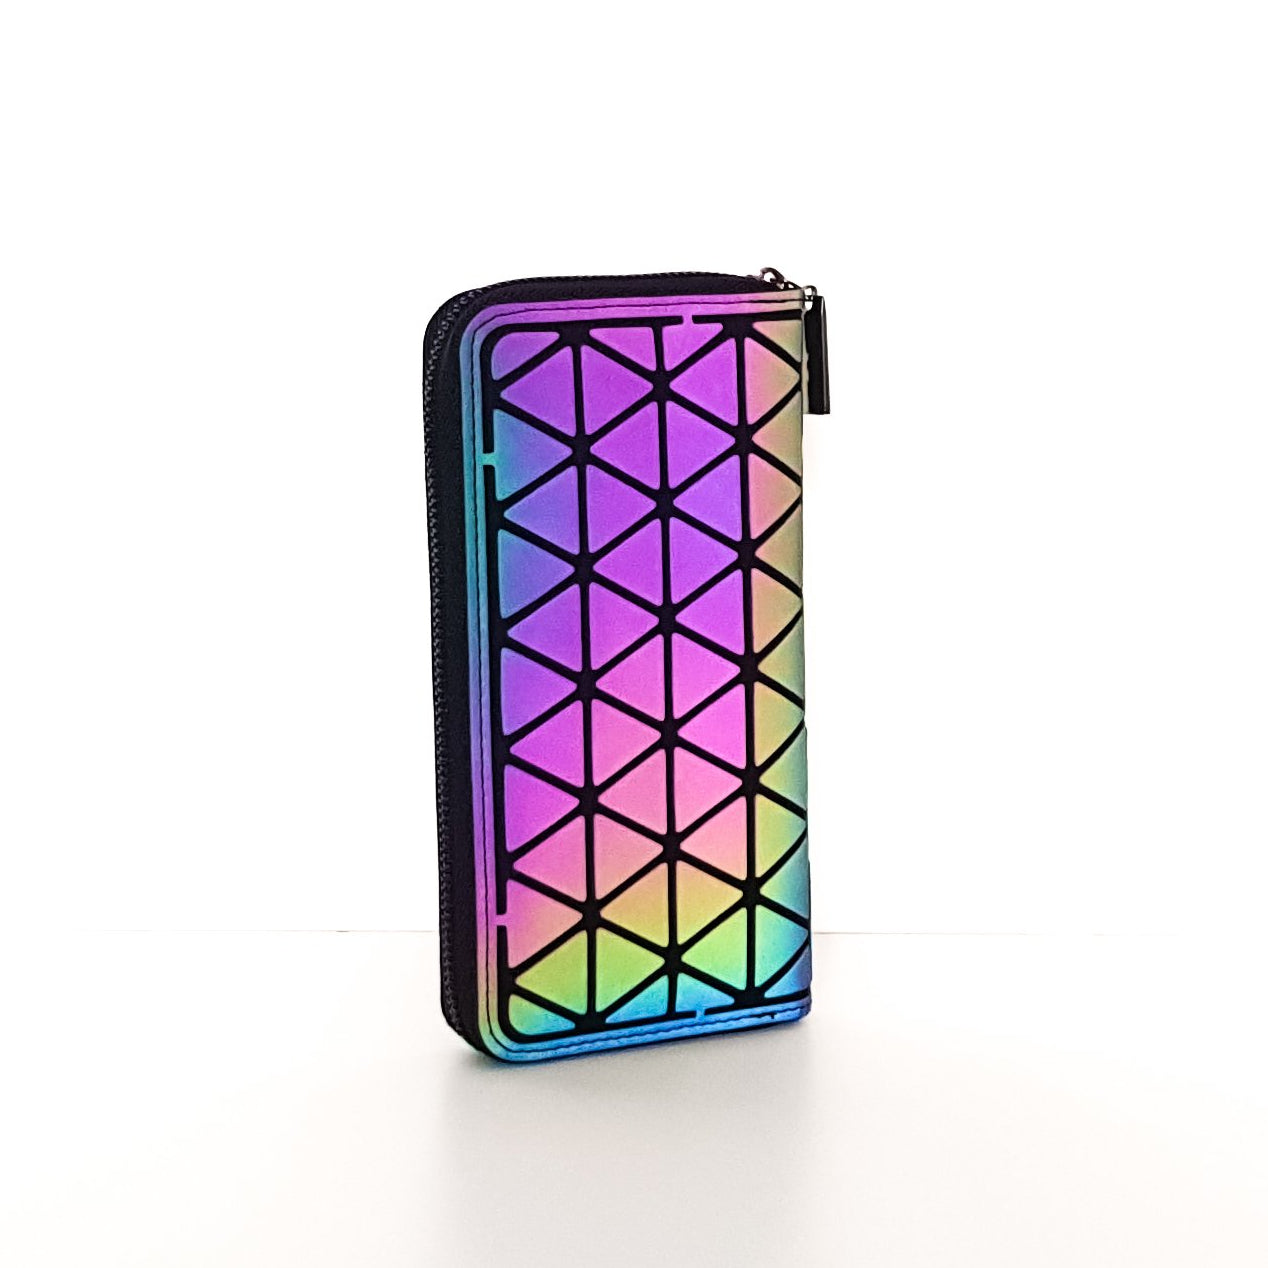 Real Holographic Geometric Luminous Wallet - Stand Out Bags